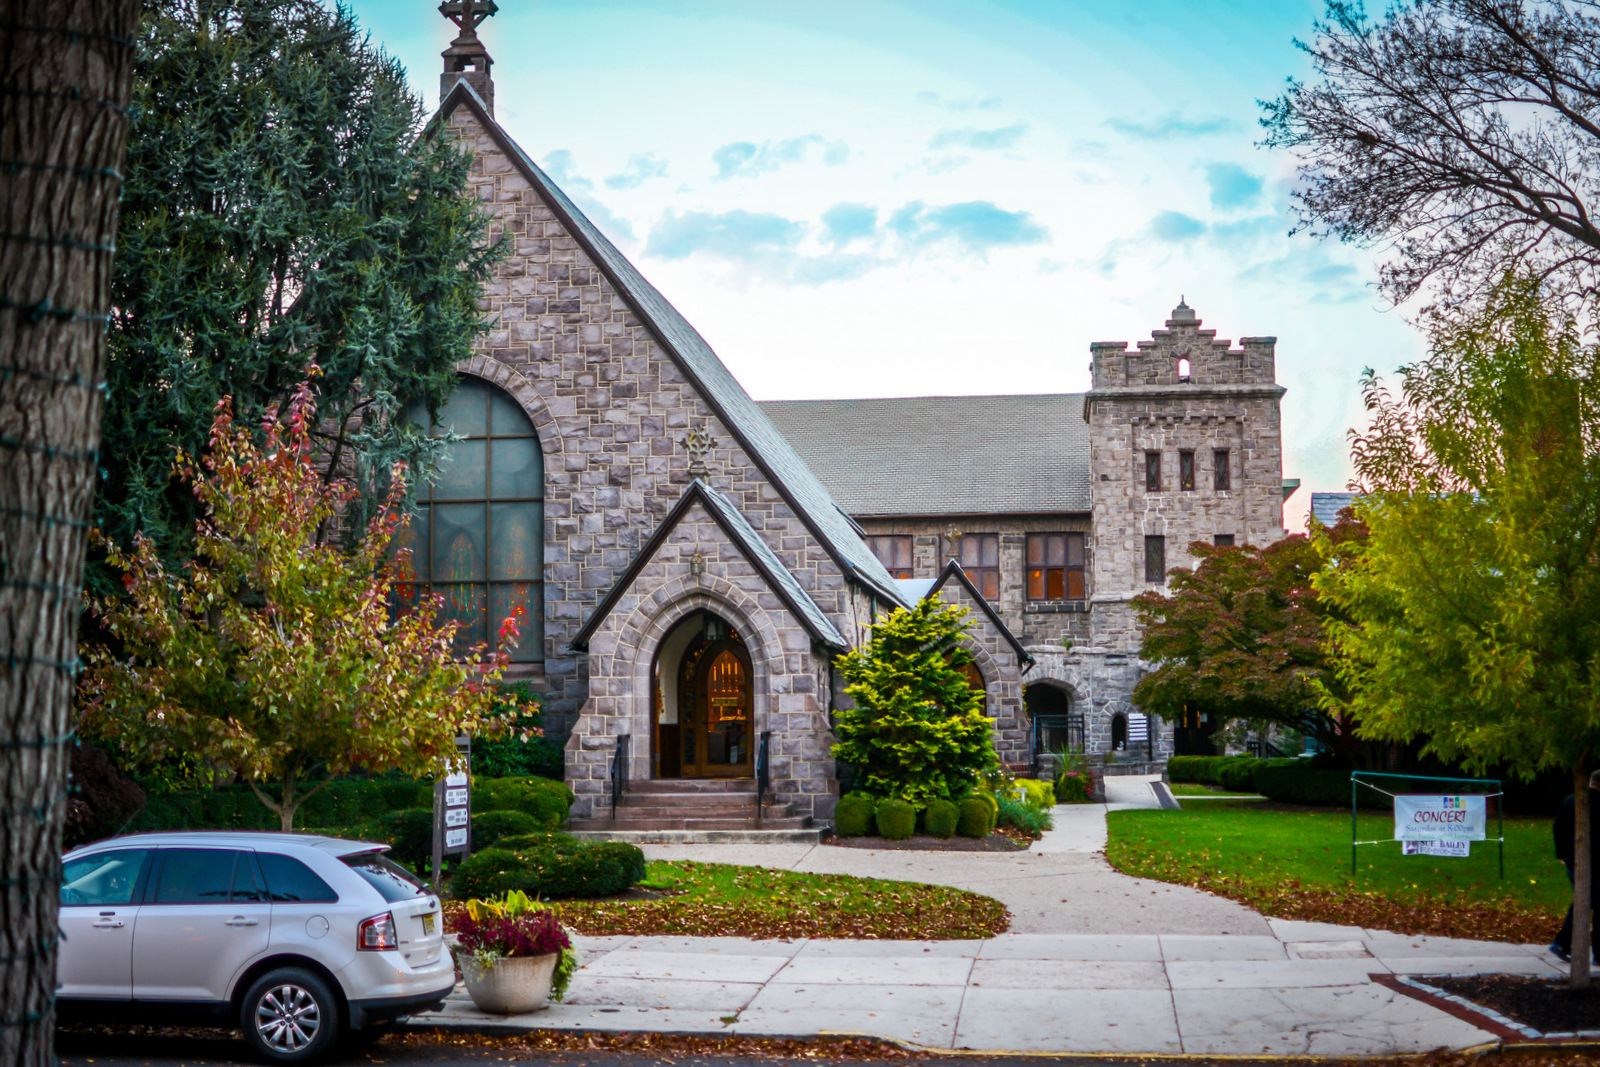 Our home, Grace Church in Haddonfield